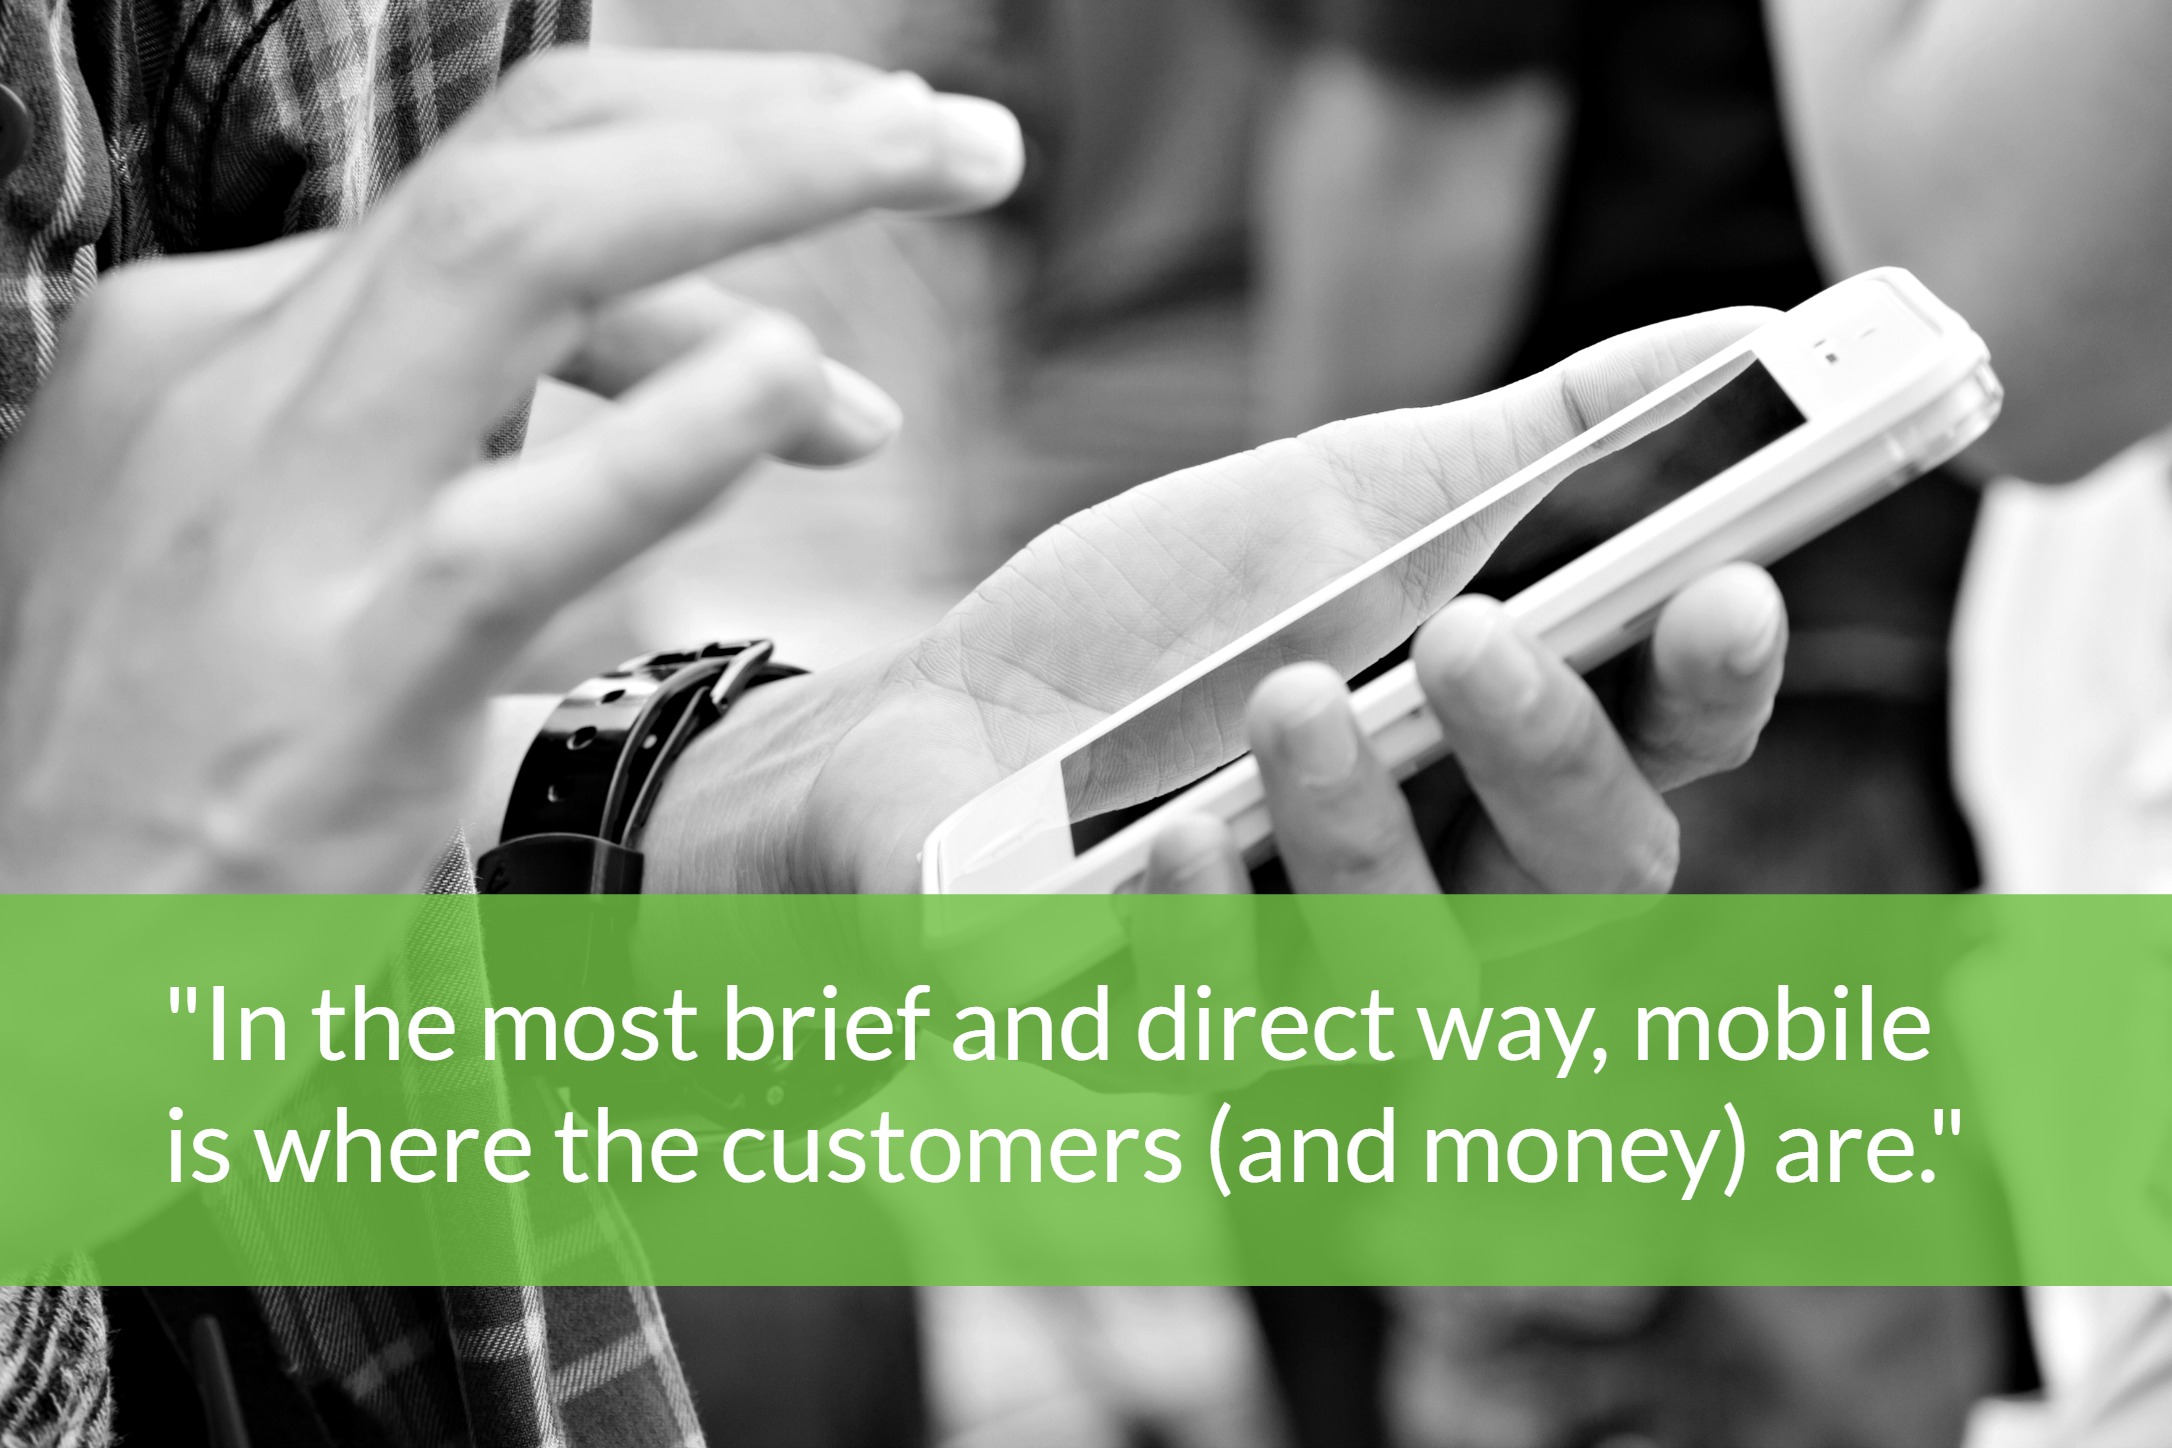 In the most brief and direct way, mobile is where the customers (and money) are